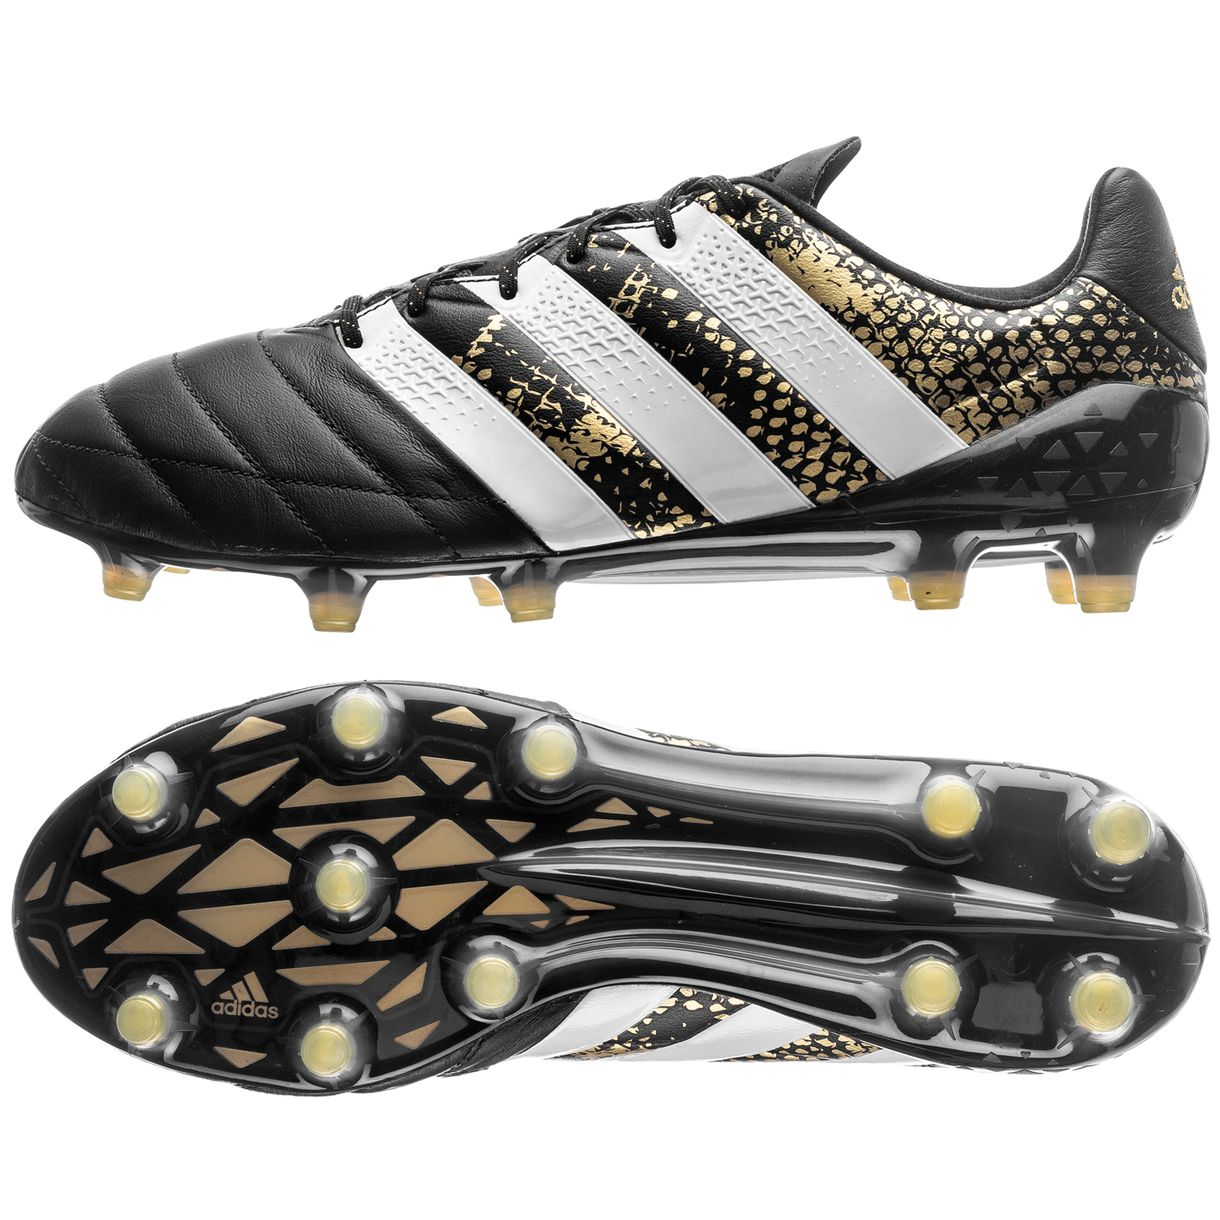 timeless design 8c58c eebe3 spain adidas ace 16 black and gold be0c6 0b780